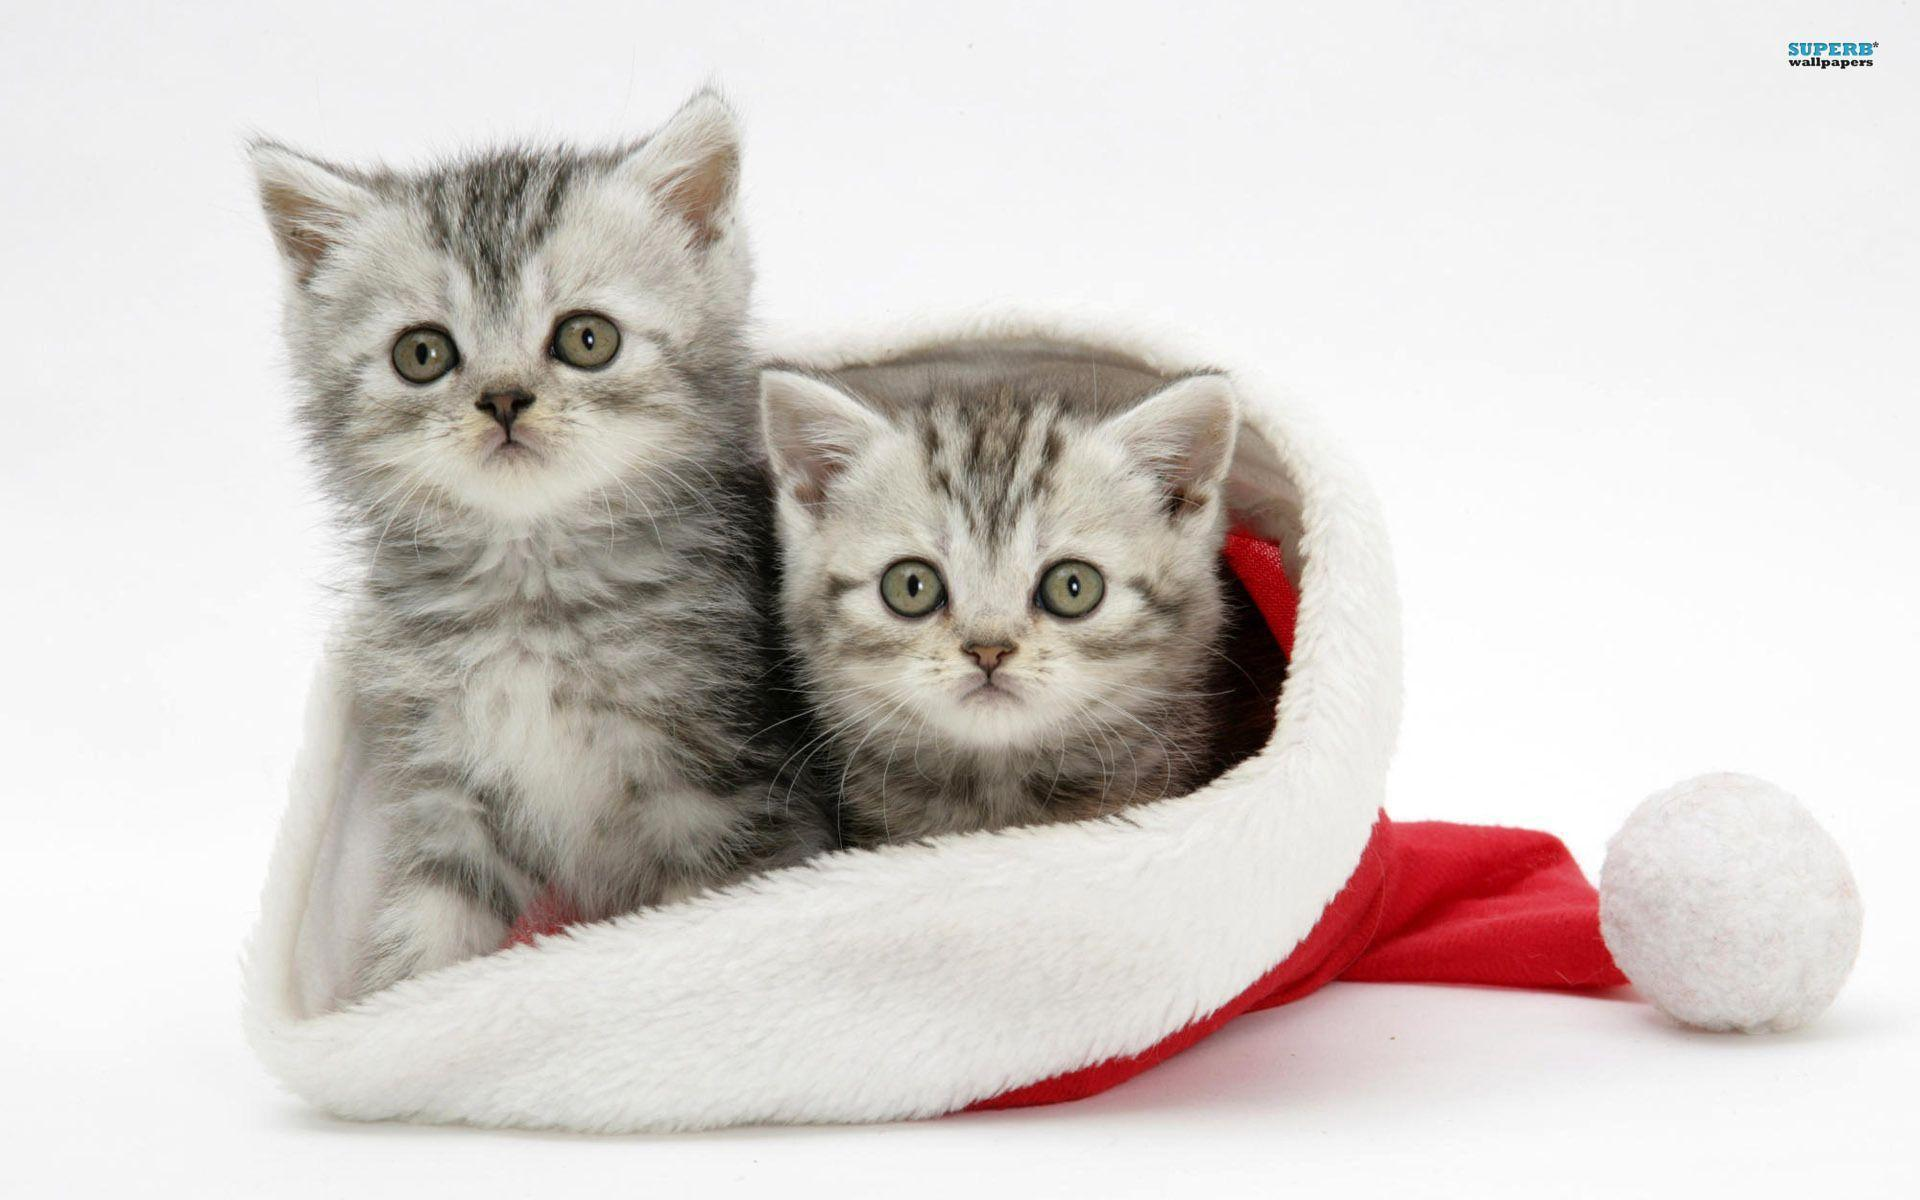 Christmas kitten wallpaper - Animal wallpapers - #